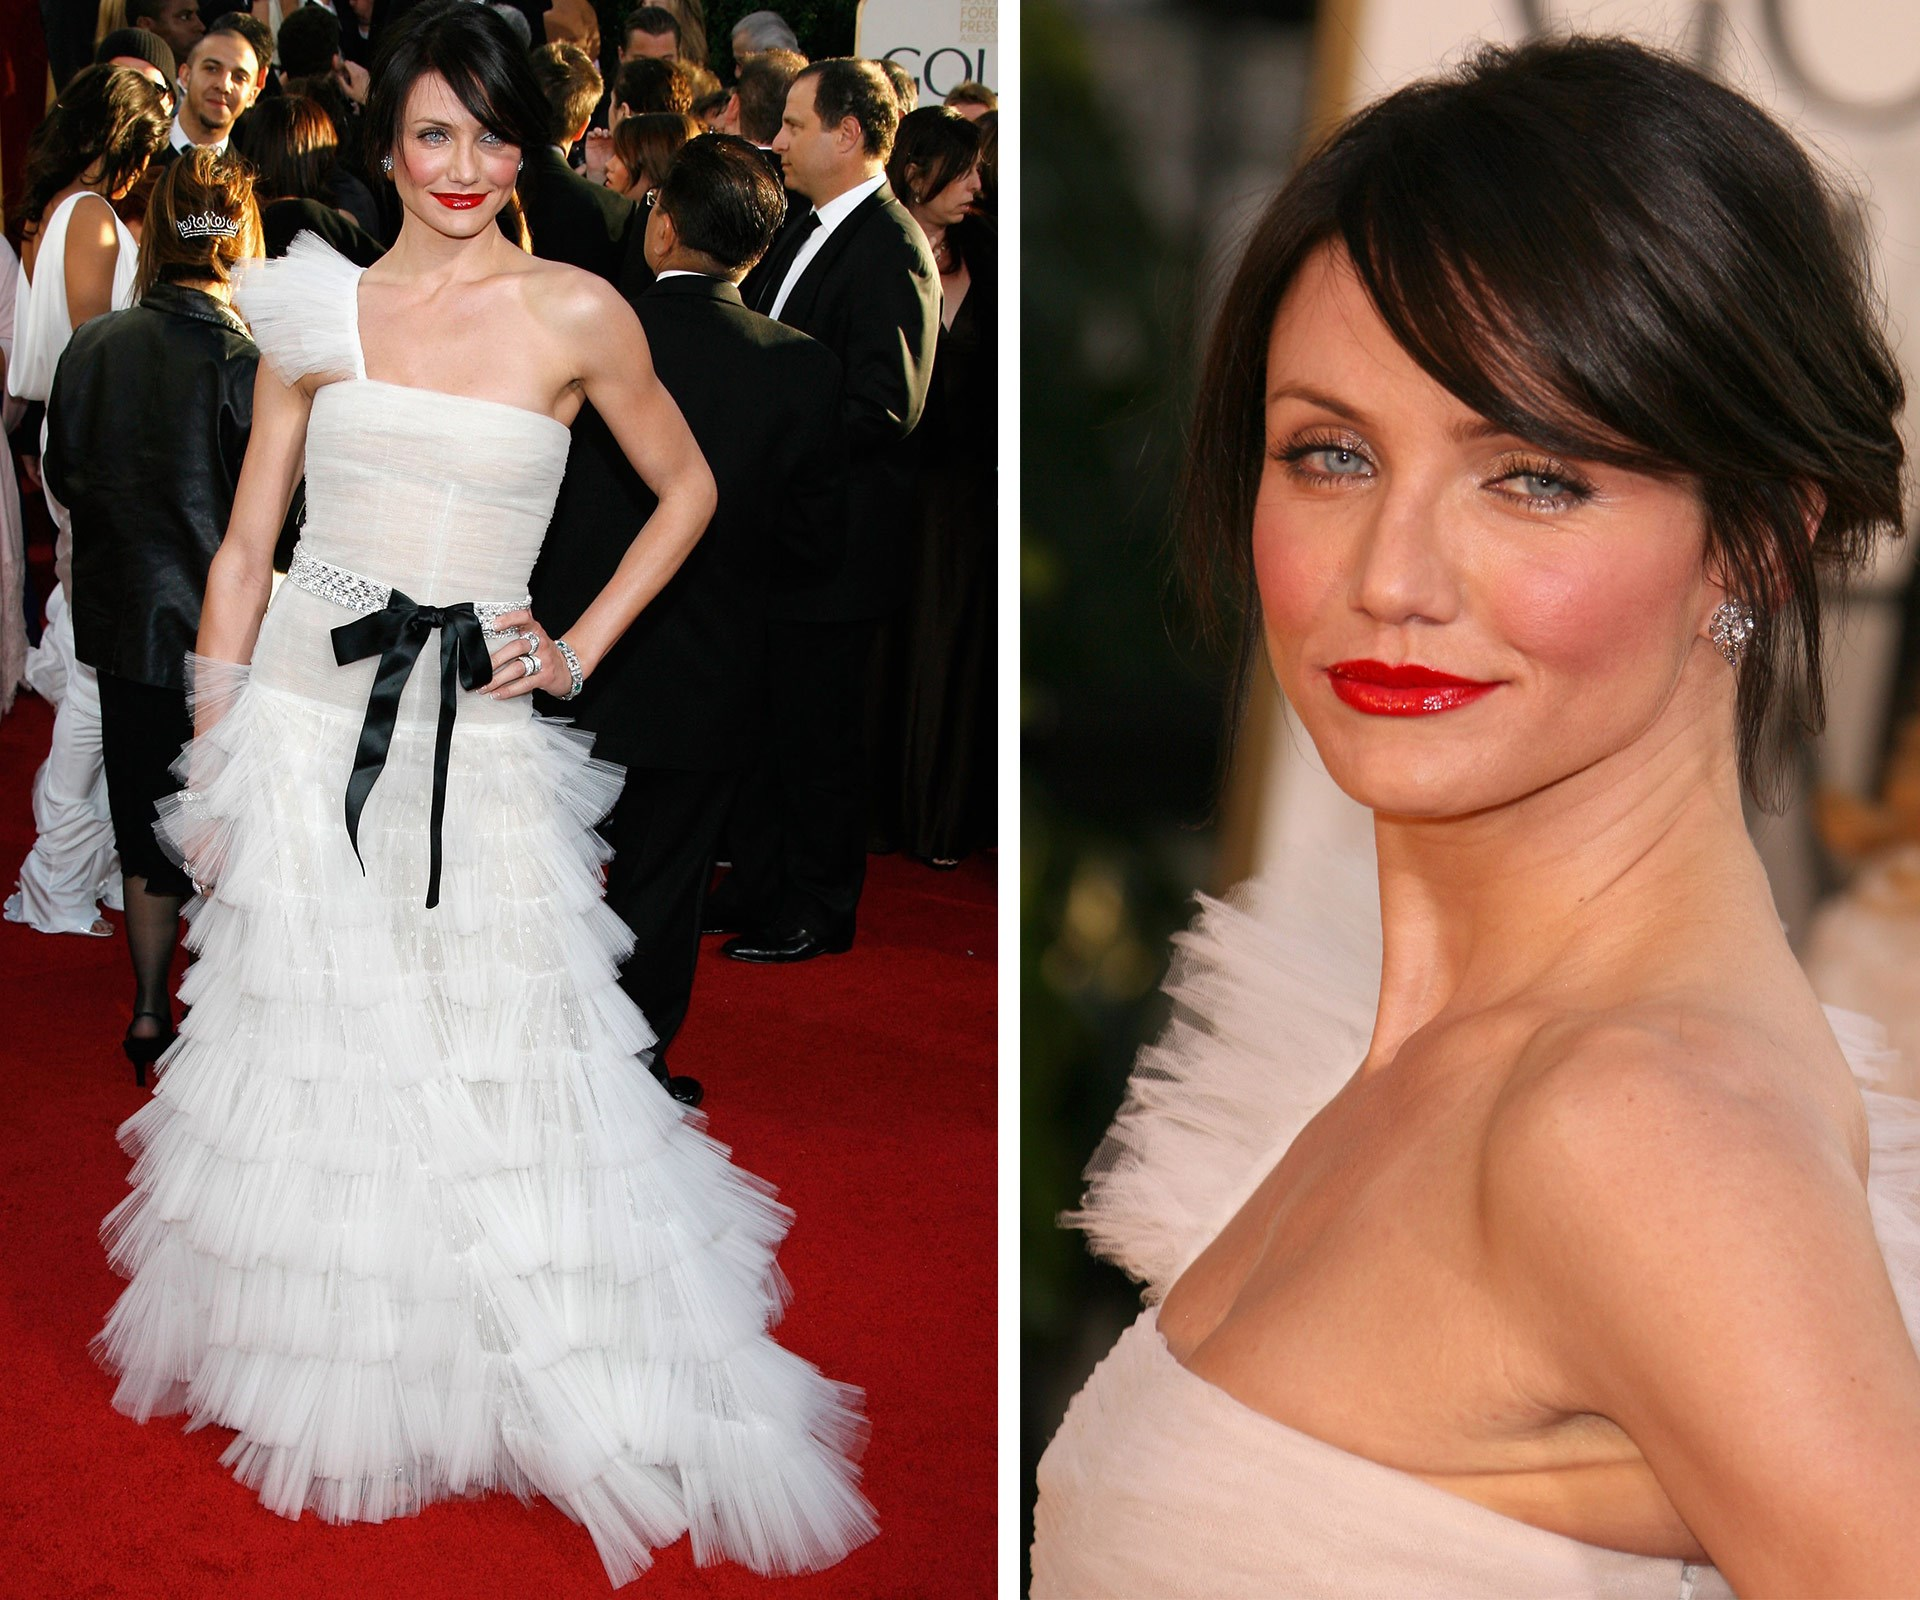 Cameron Diaz was a total knock out with this sultry look in 2007. The bold lip with the brunette hair = red carpet winner.